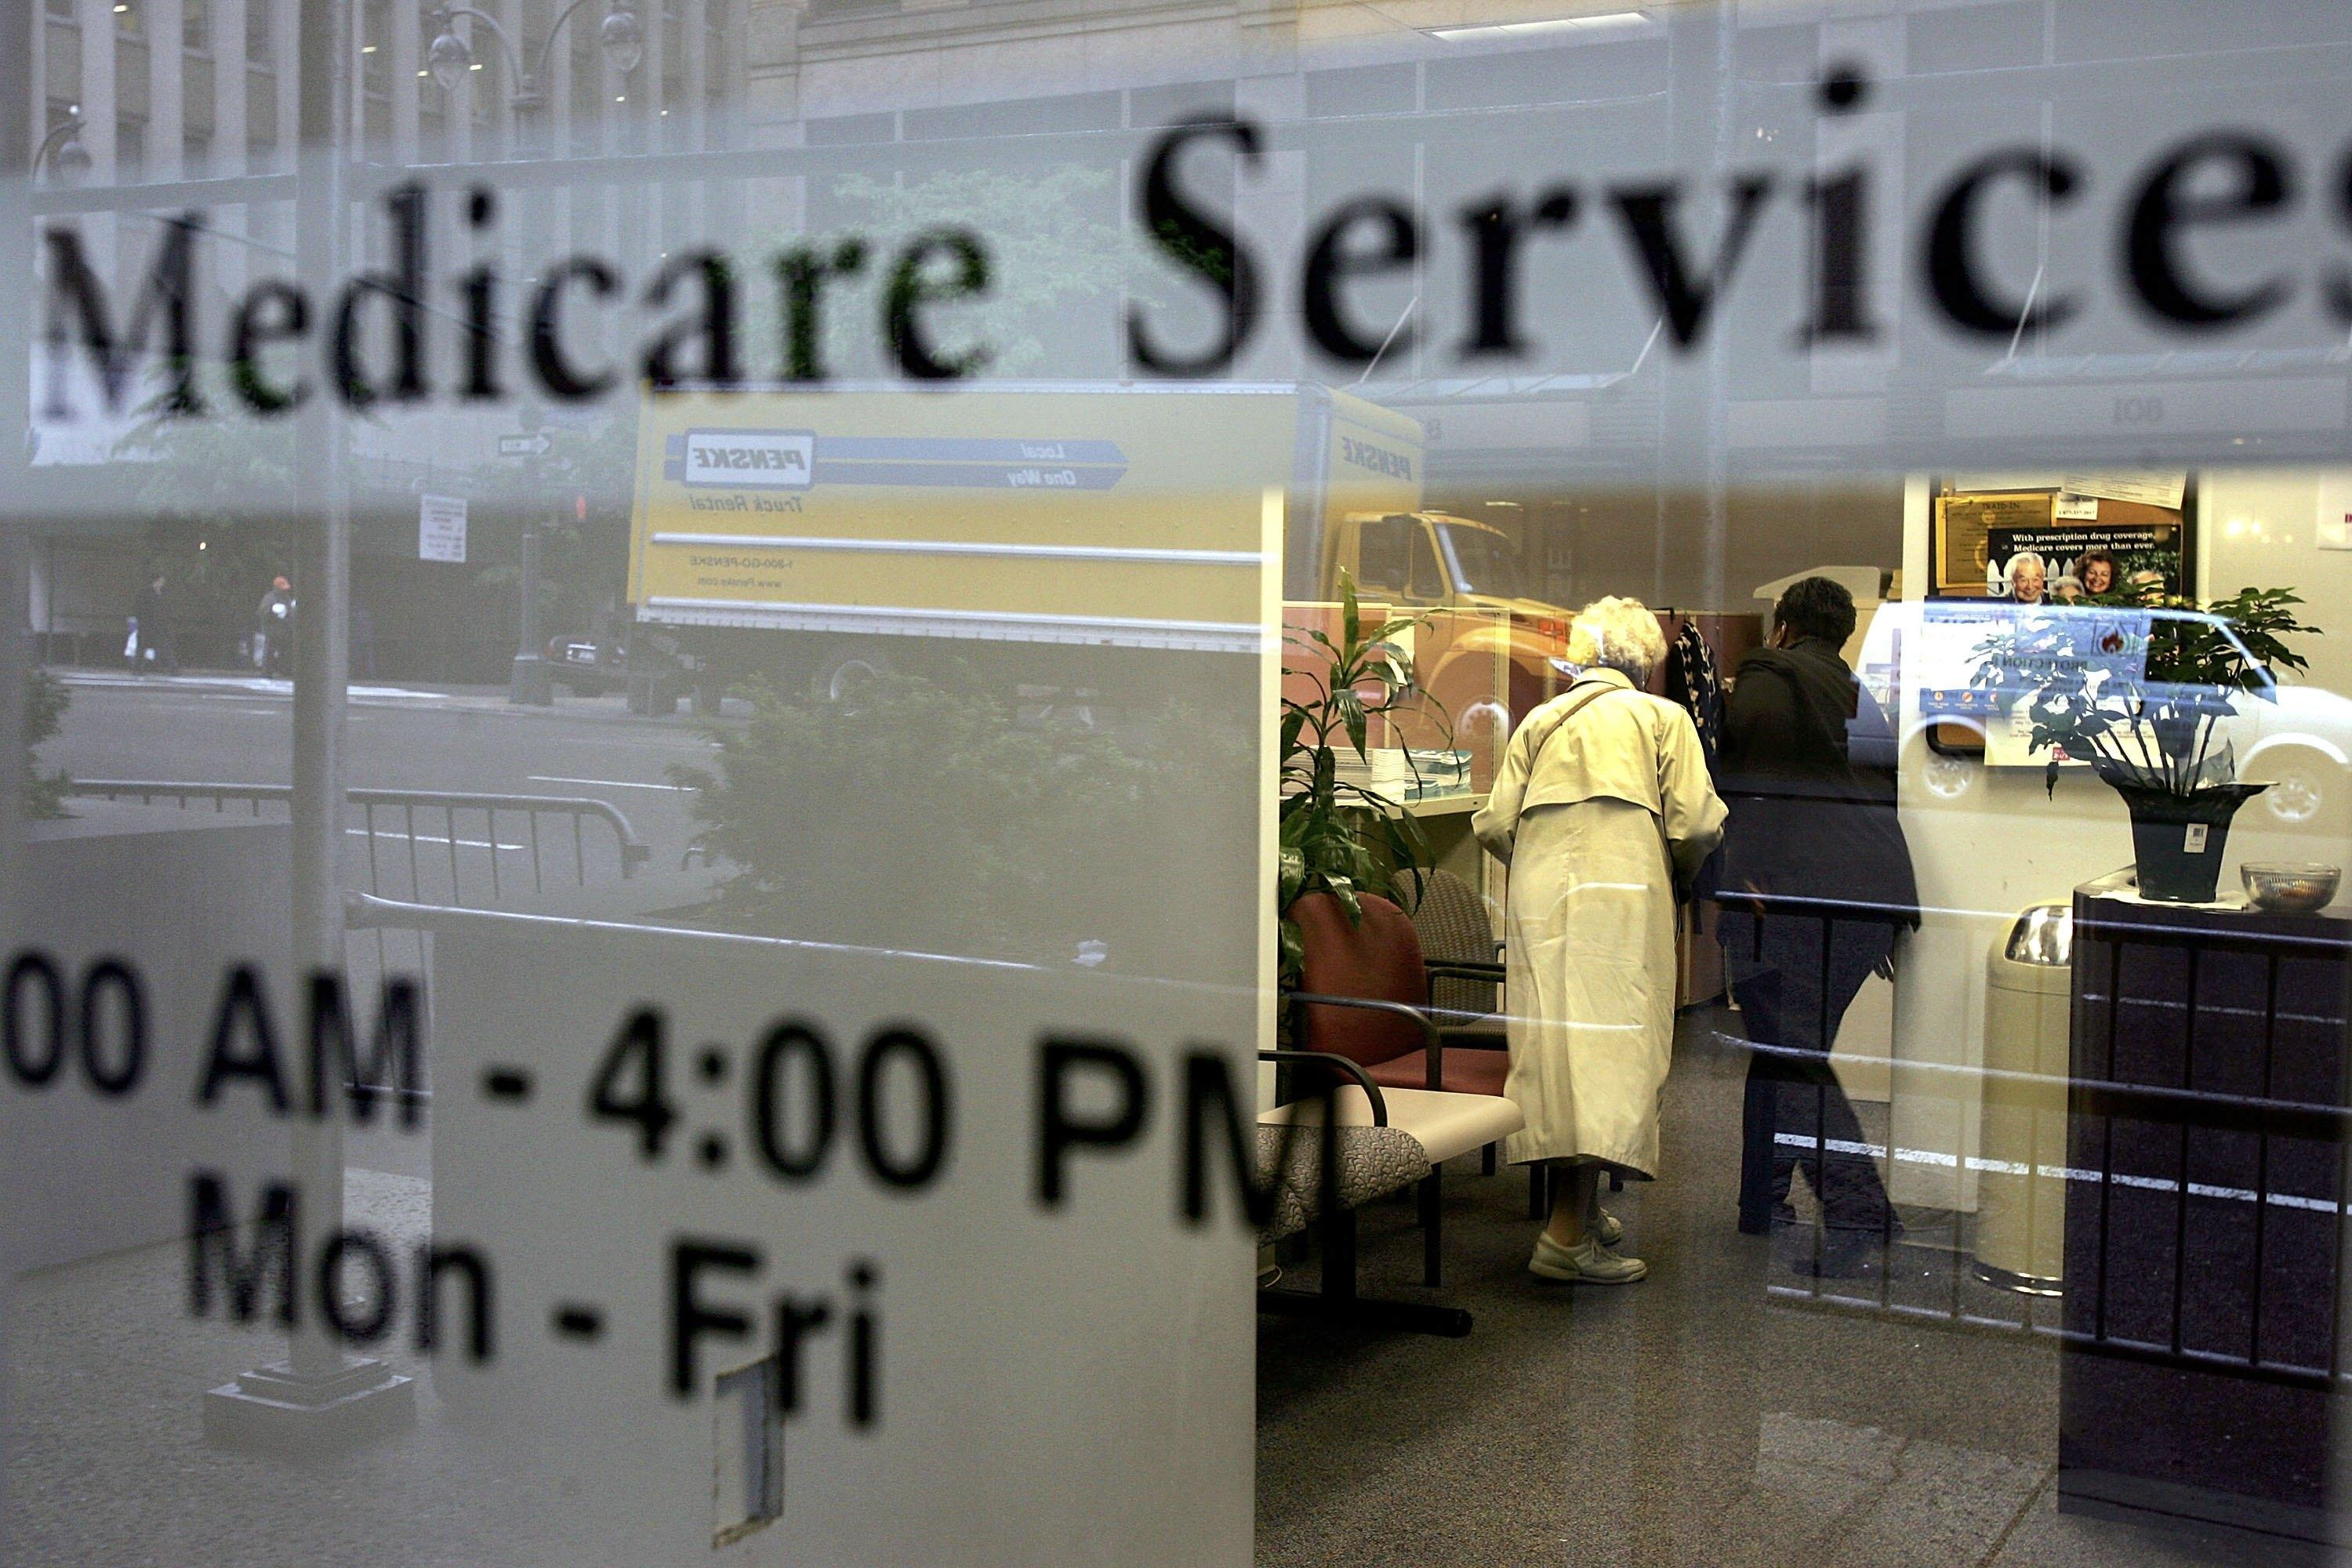 Medicare 2020: 4 major changes you should know about